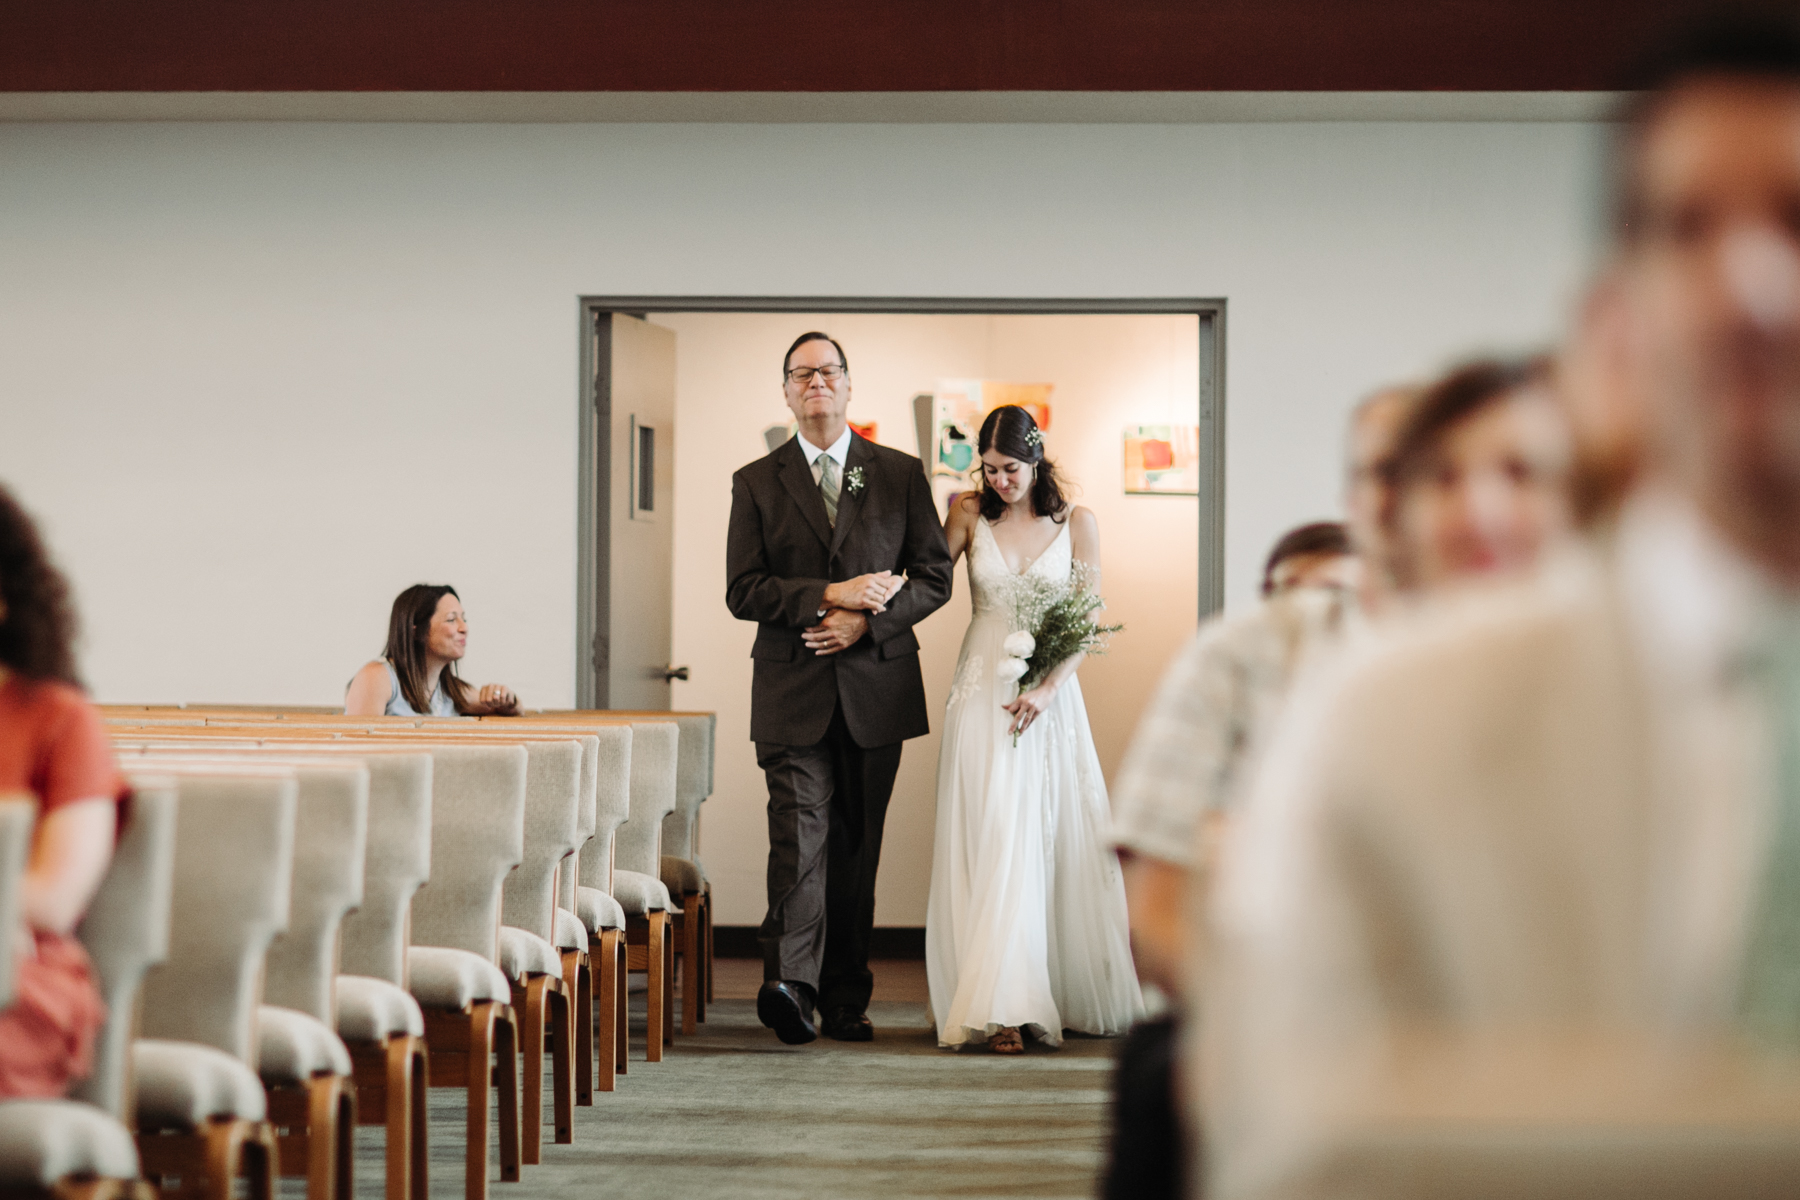 Father and daughter walking down the aisle at a downtown knoxville wedding at redeemer church